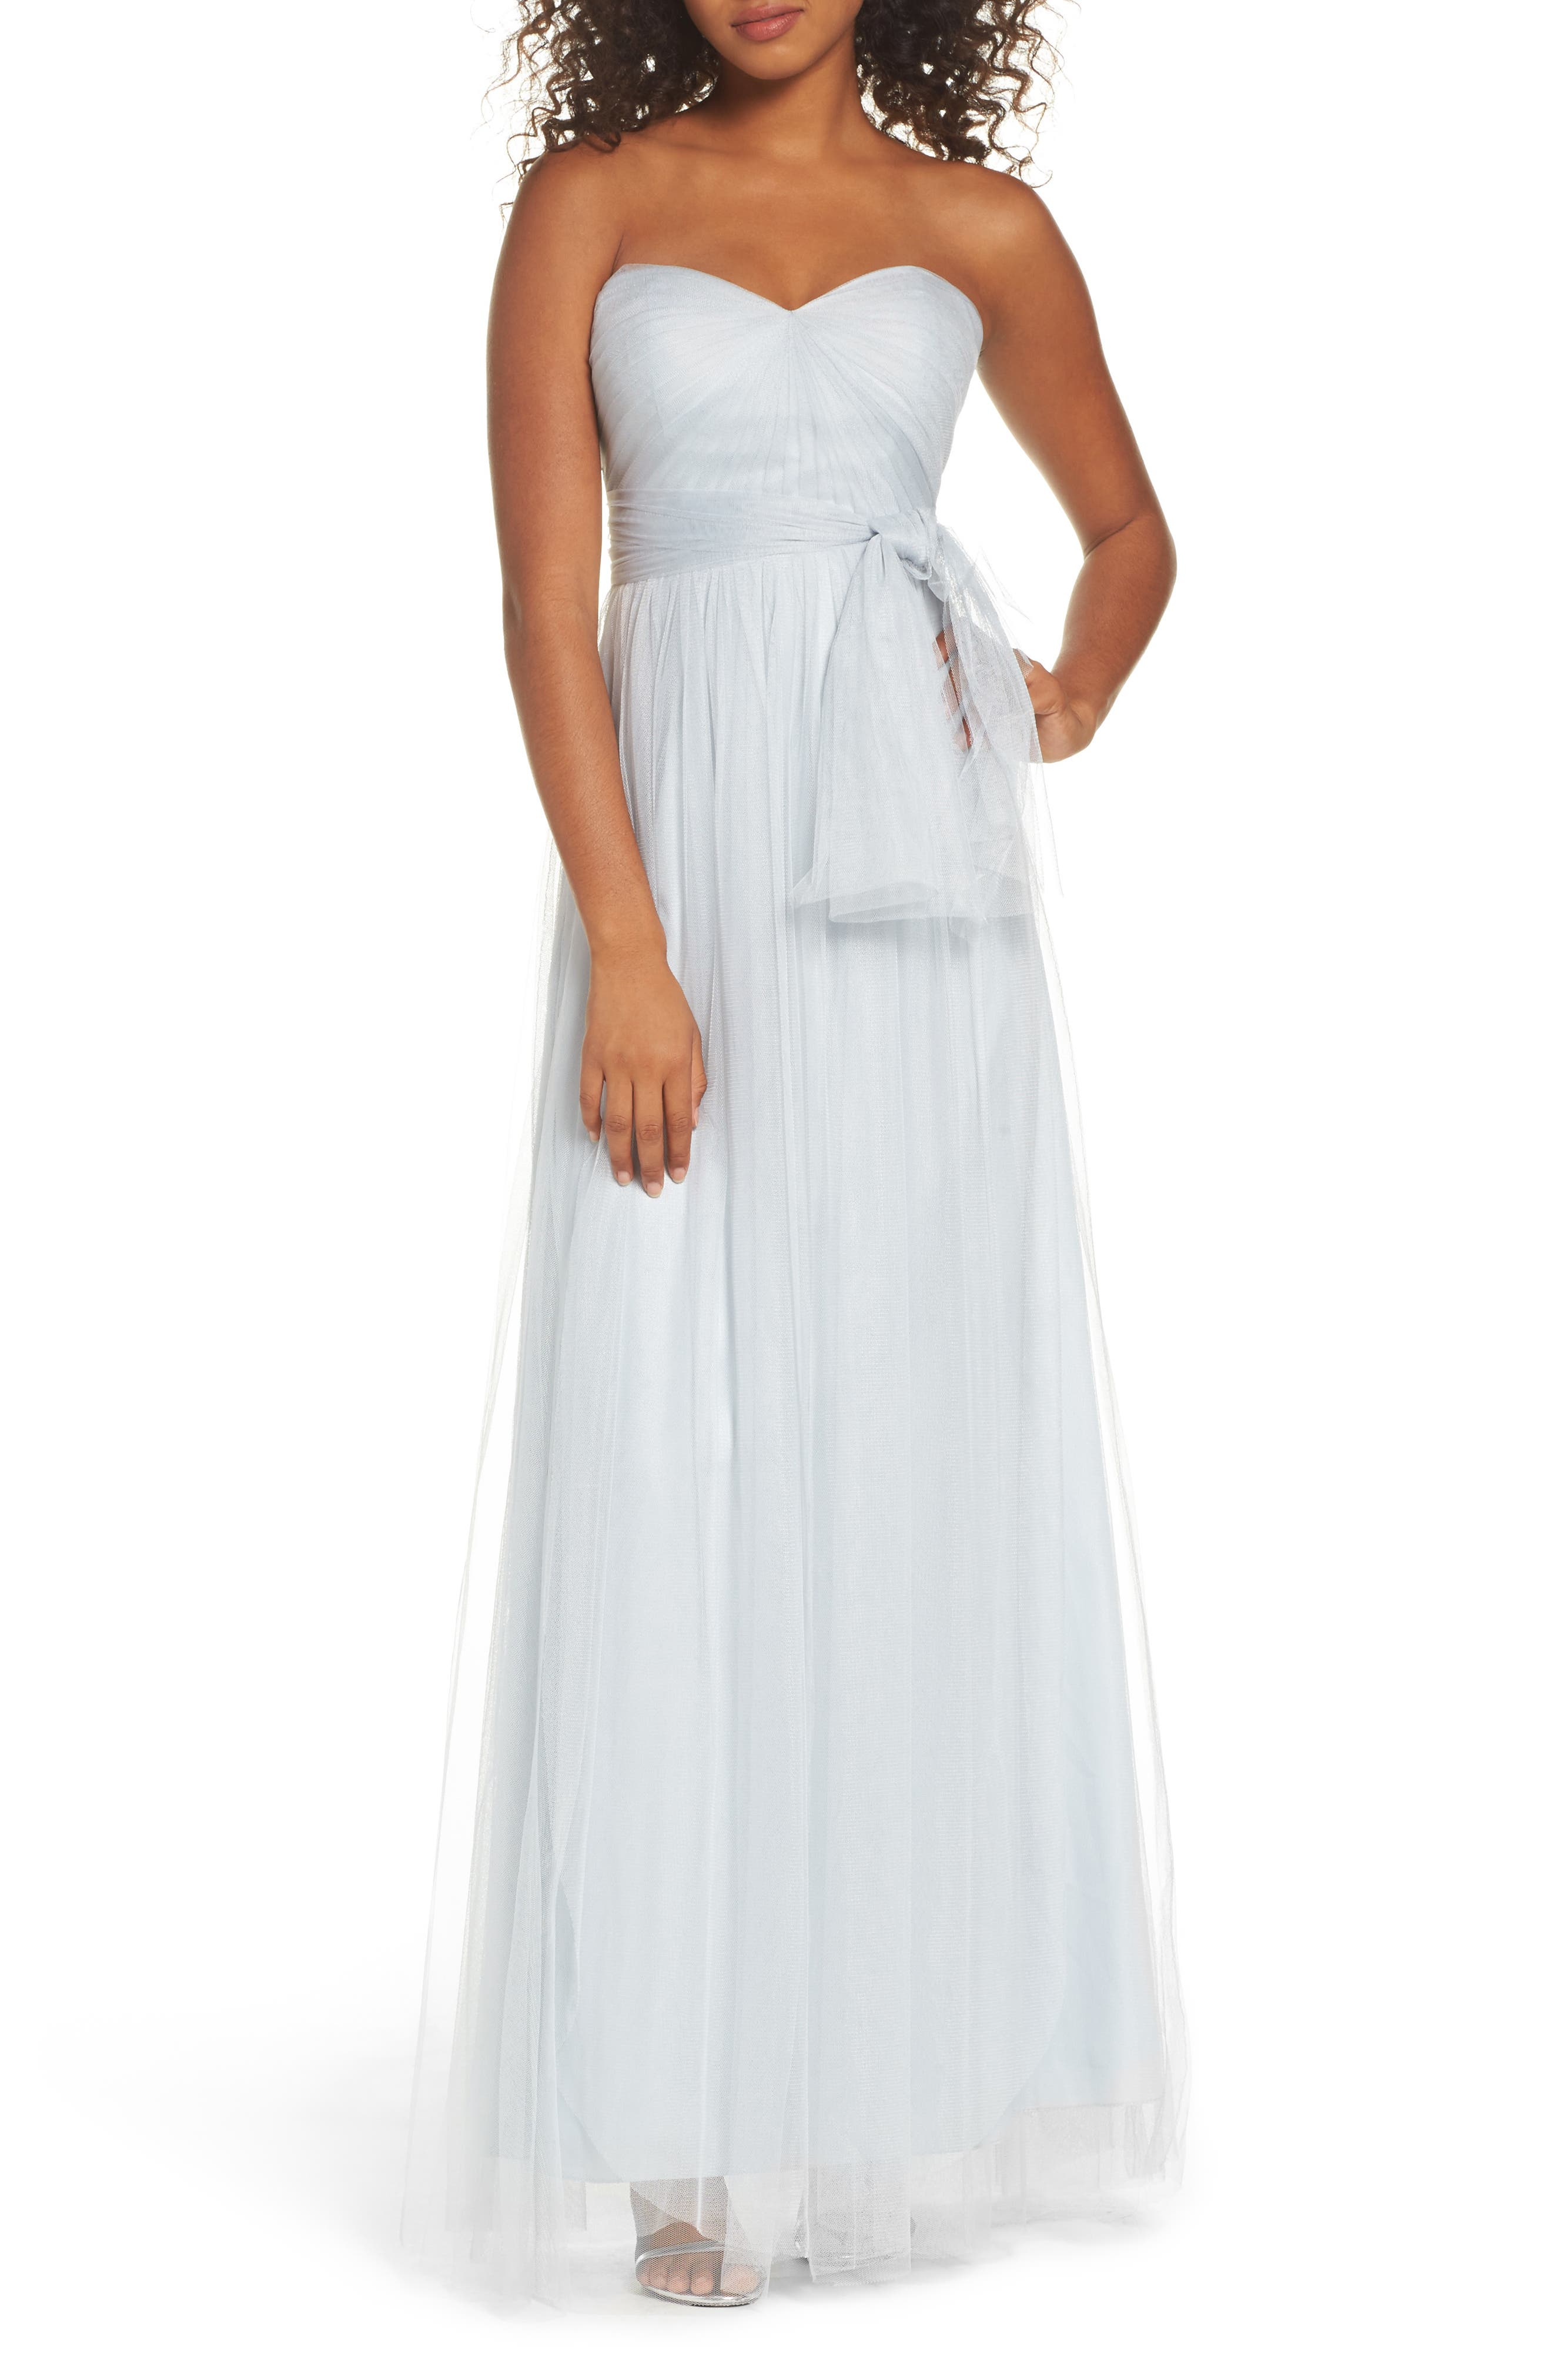 Annabelle Convertible Tulle Column Dress,                         Main,                         color, Serenity Blue